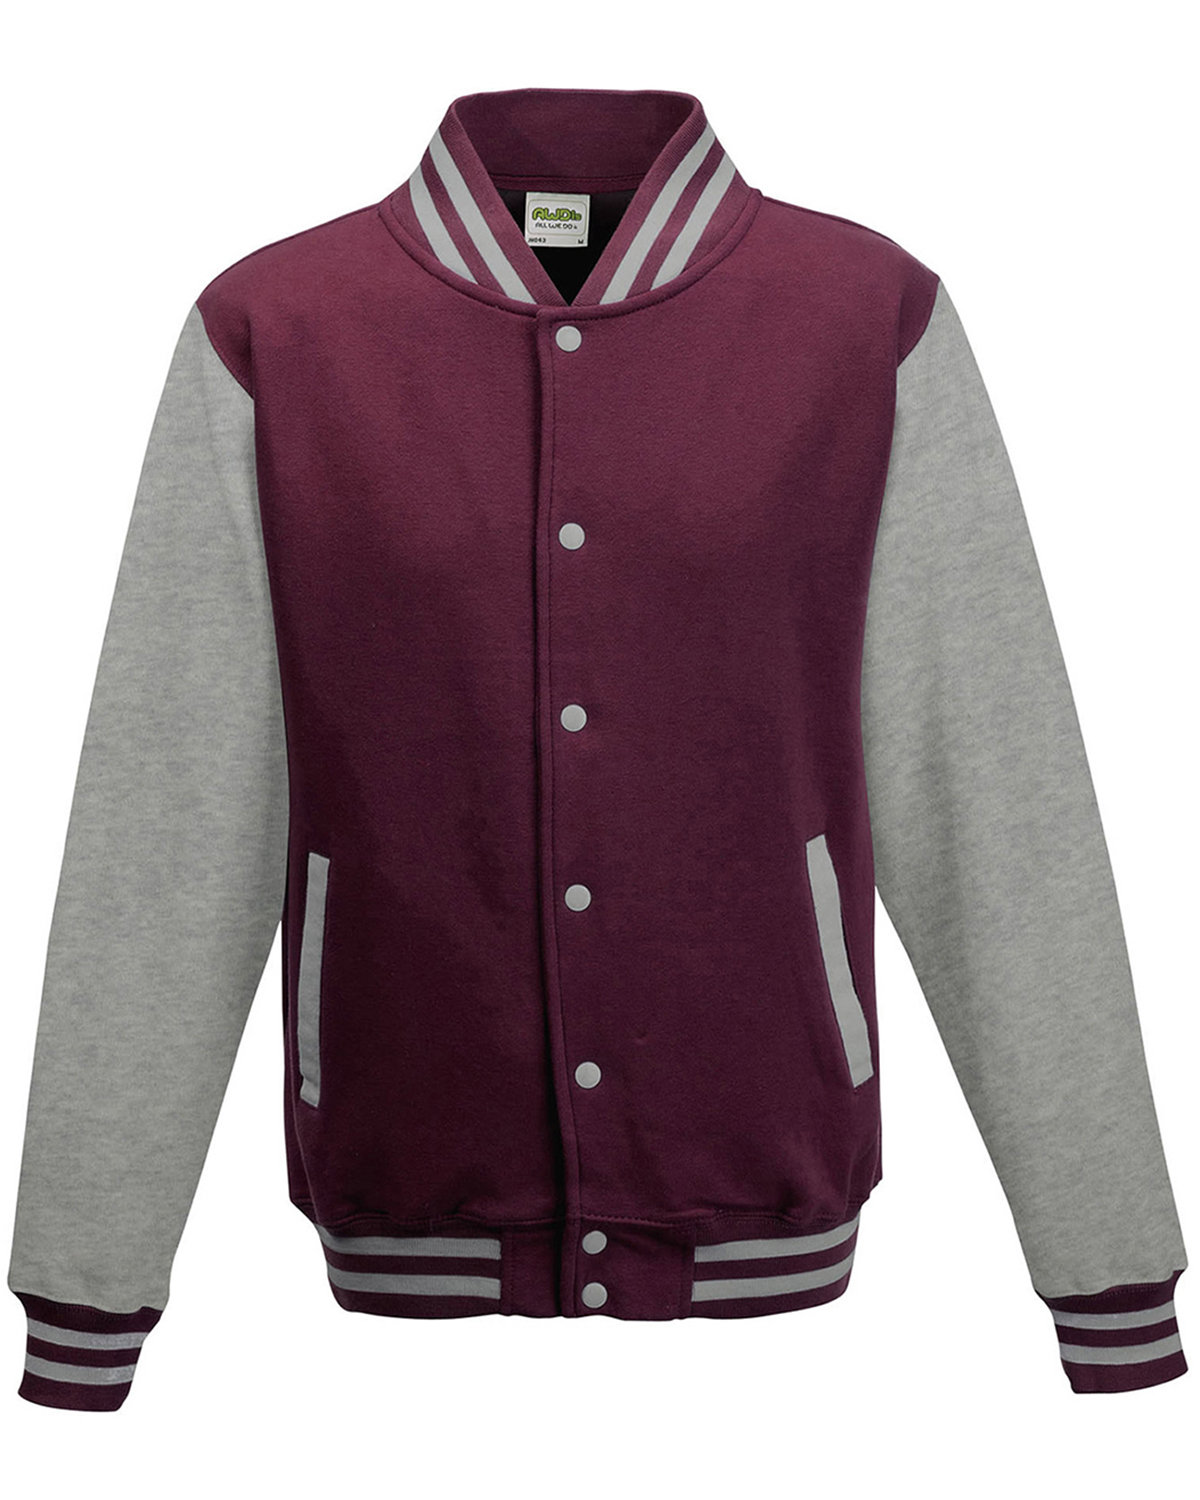 Just Hoods By AWDis Men's 80/20 Heavyweight Letterman Jacket BURGNDY/ HTH GRY